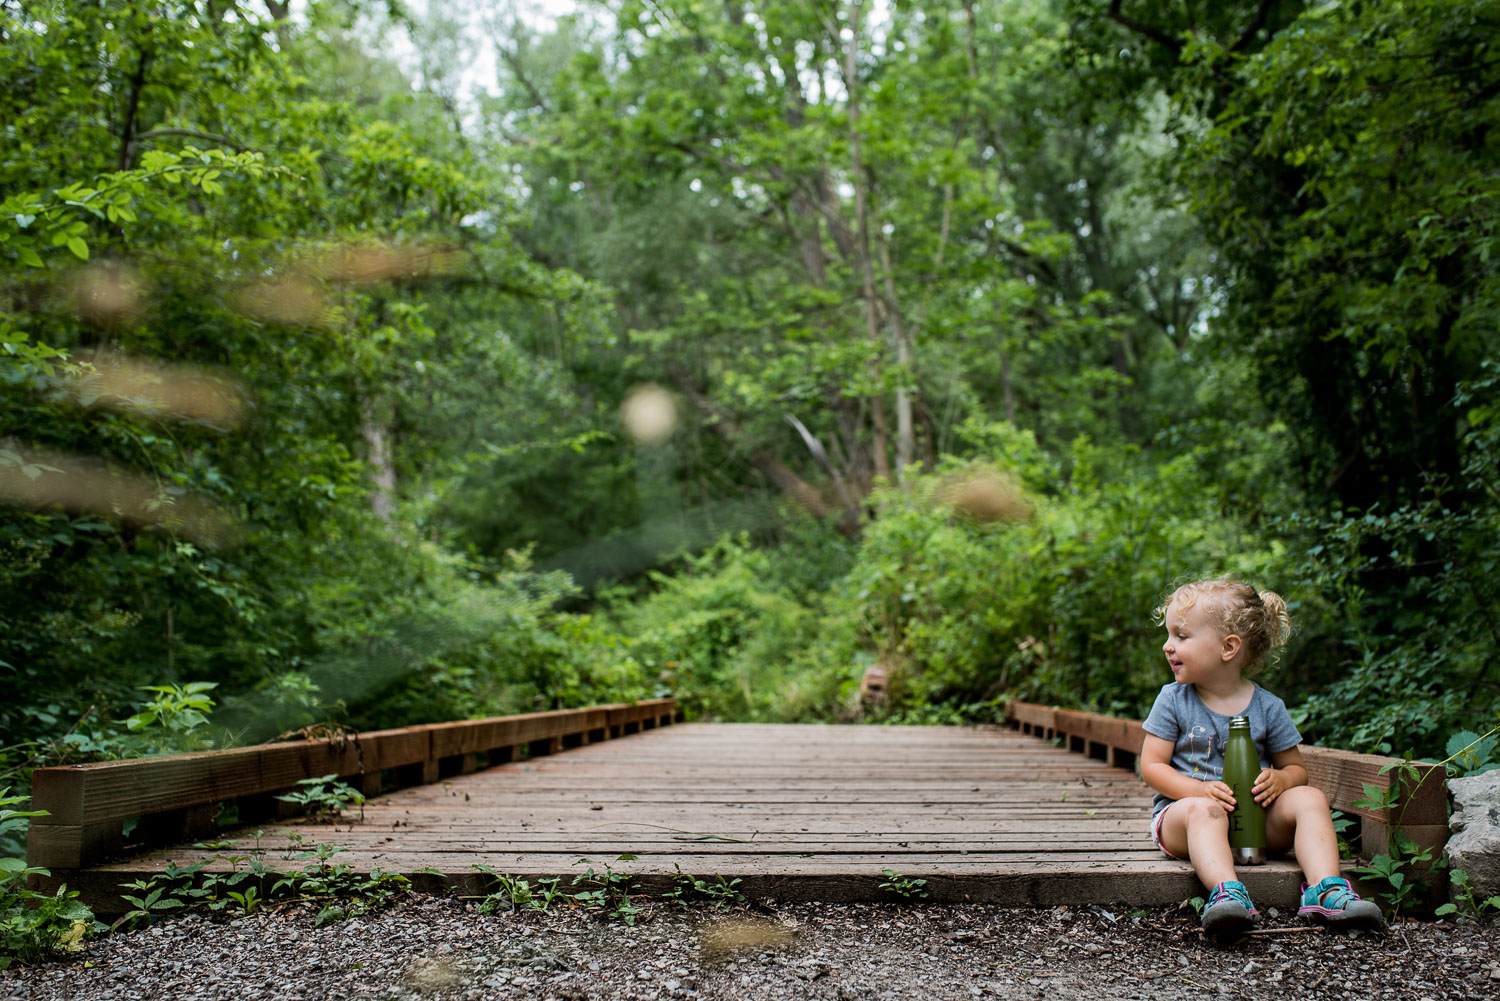 Toddler girl in a grey shirt and light blue sandals sitting on a wooden bridge surrounded by green trees and a grey gravel trail.